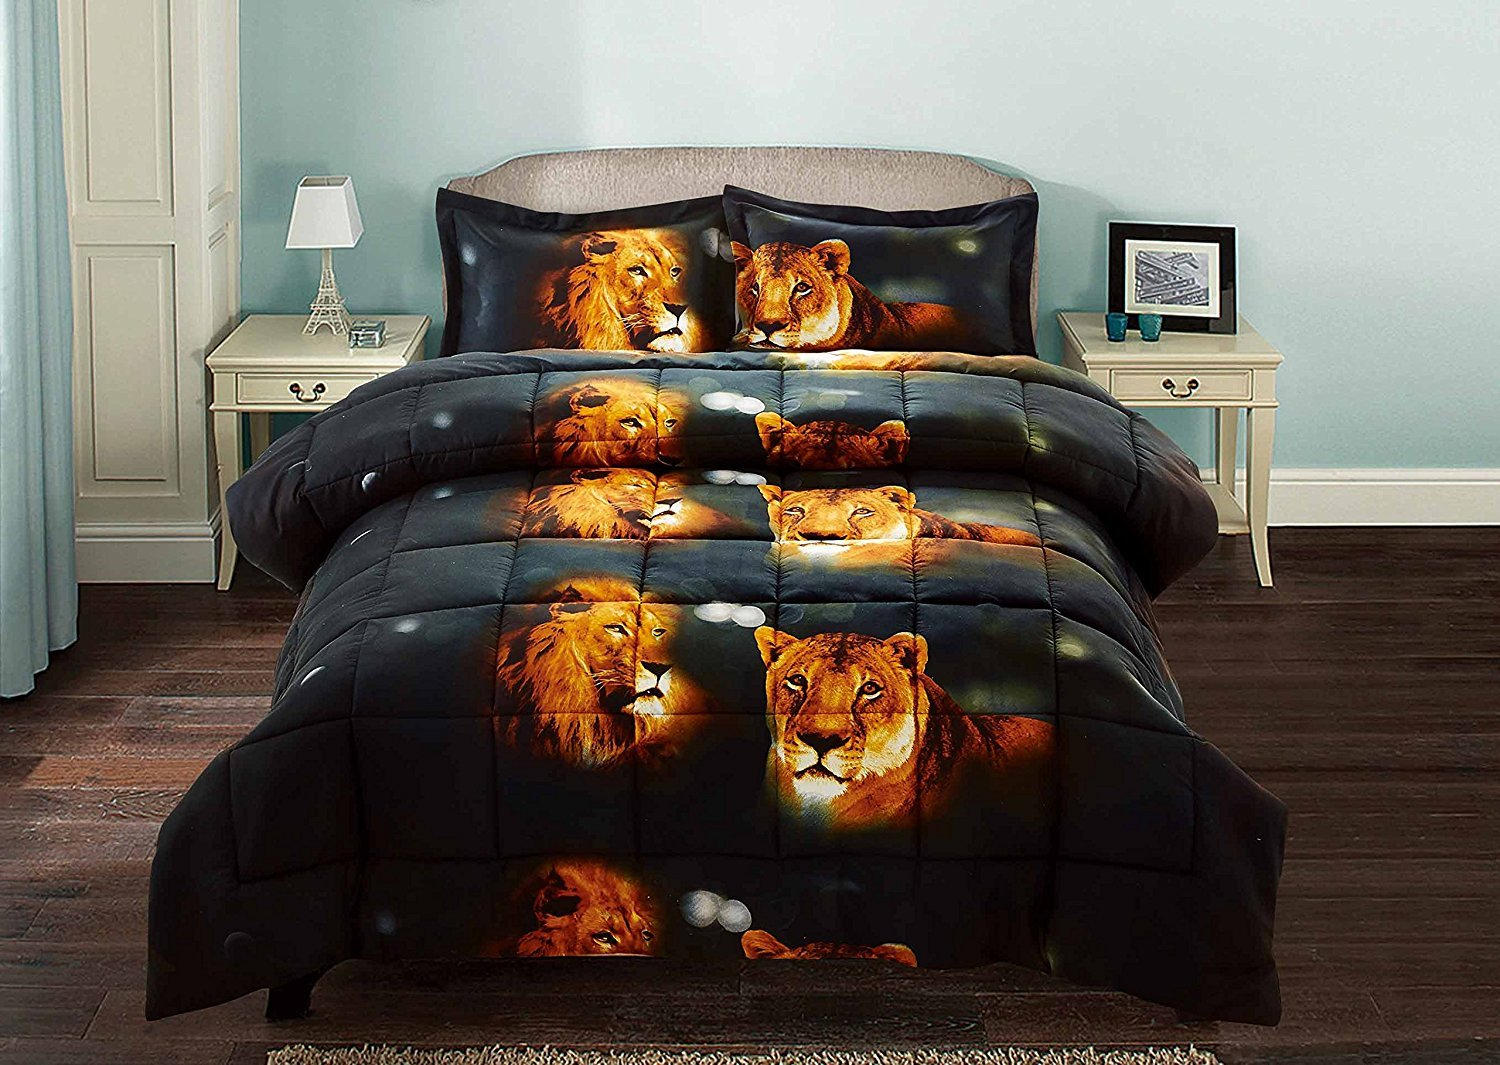 HUAJIE 2 Piece Set Beautiful Soft 3d Print Vivid Animals Pattern Box Stitched Comforter Set (1 Comforter,1 Pillowcase) (Twin, Tiger Lion) by HUAJIE (Image #2)